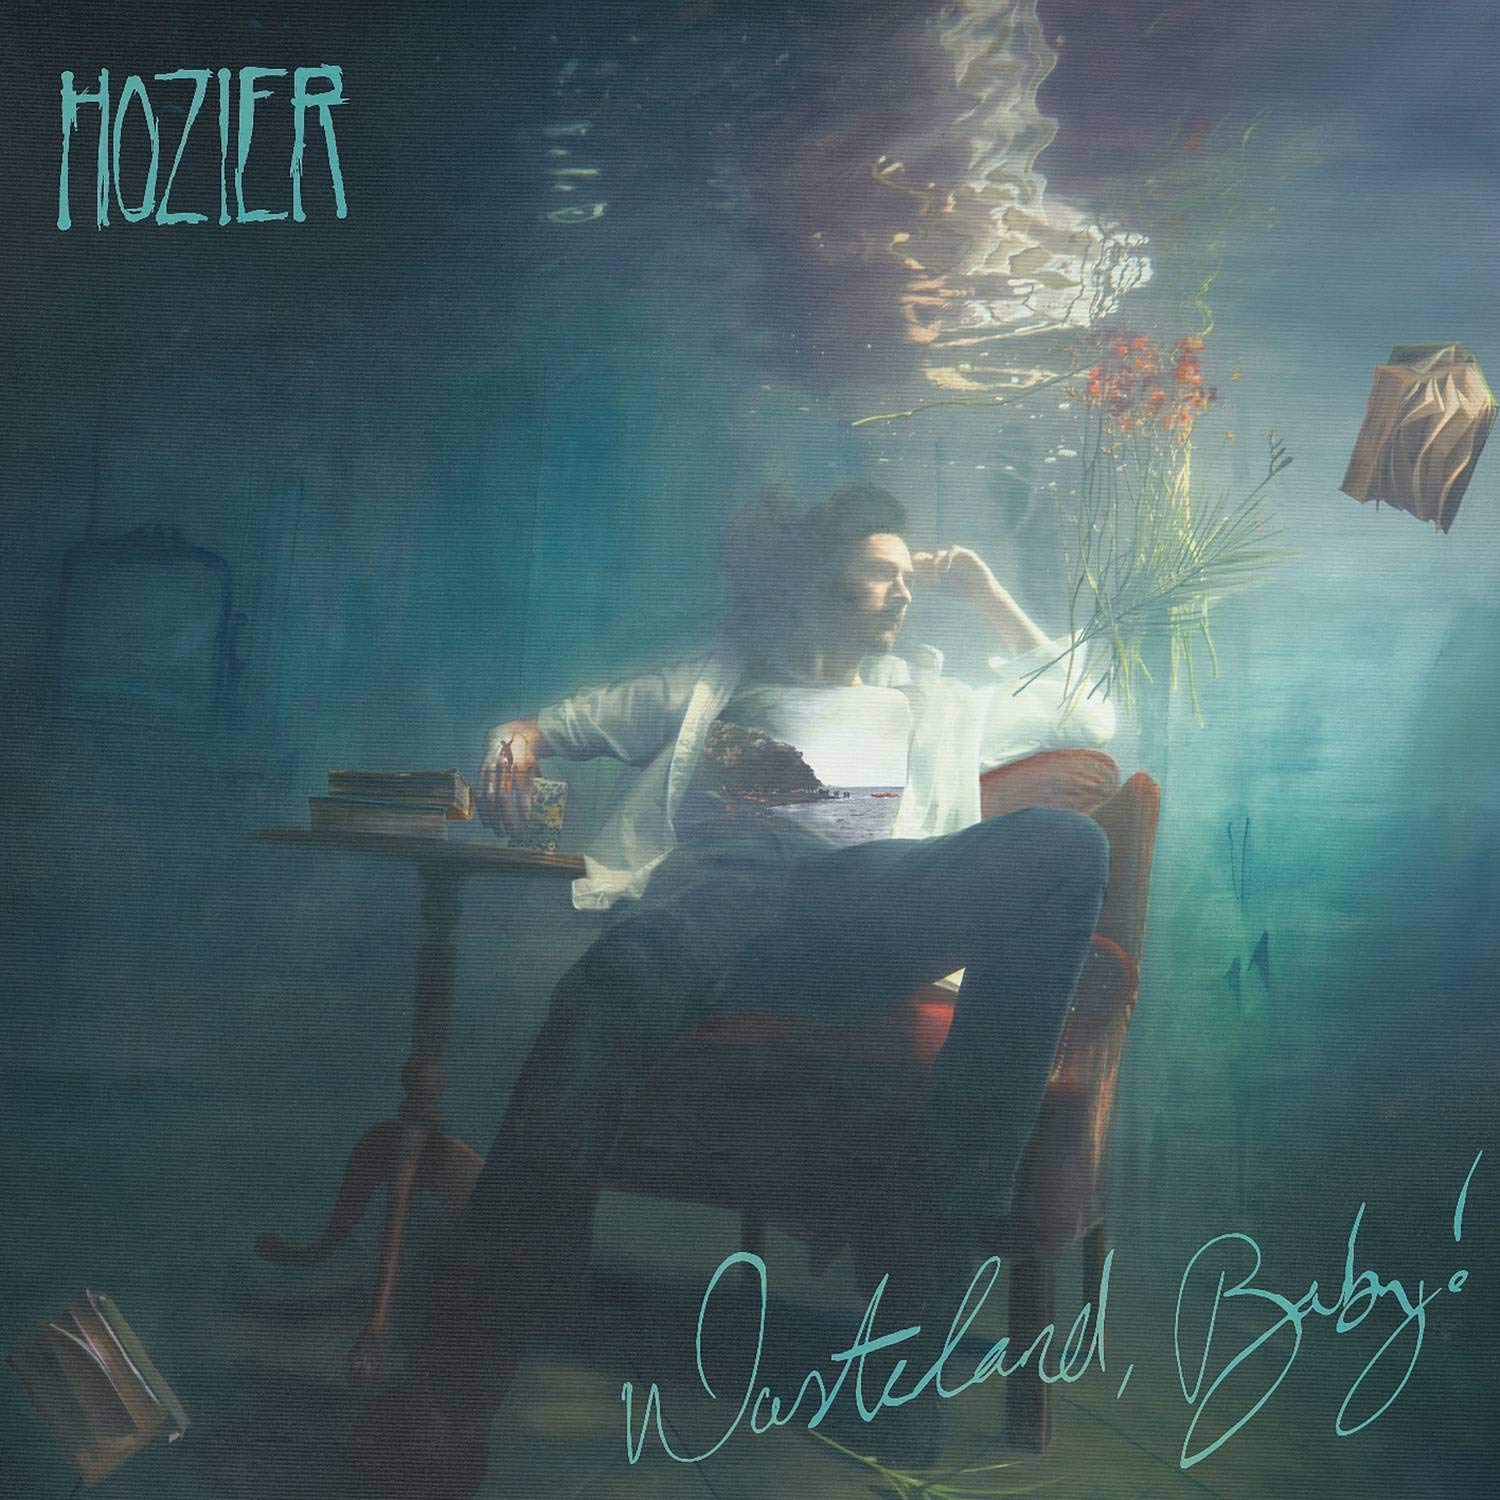 Hozier - Wasteland, Baby! - Amazon.com Music